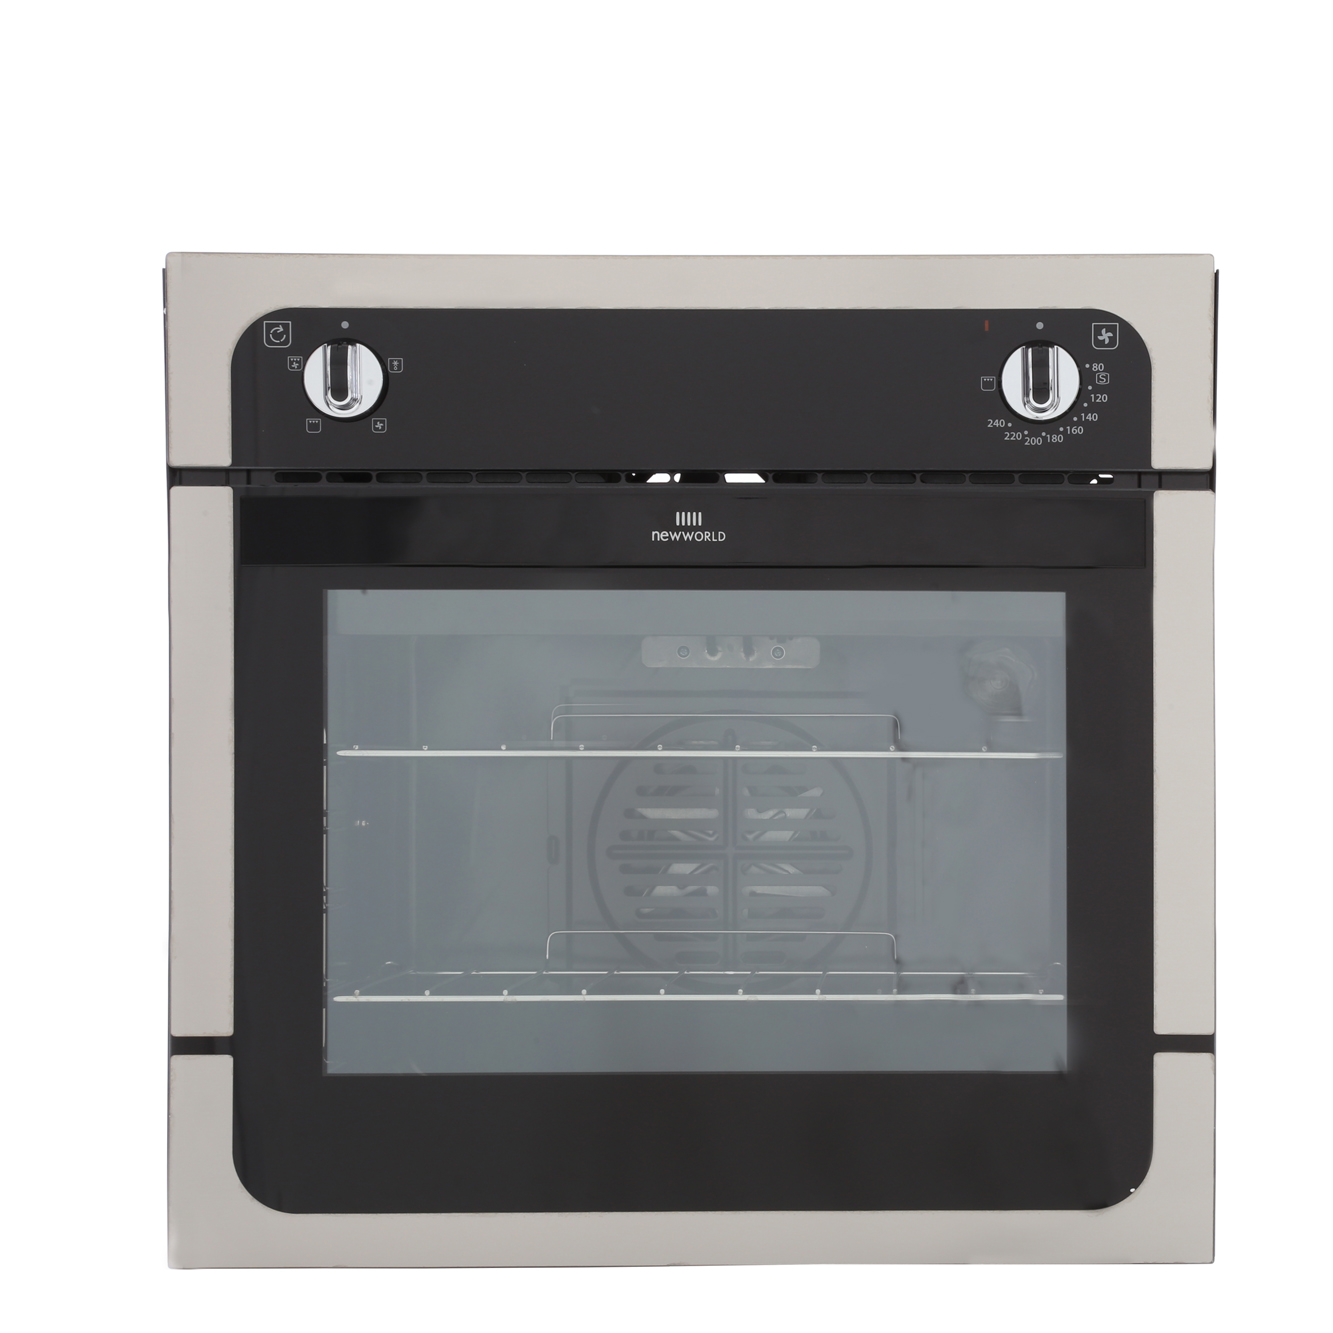 New World NW601F Stainless Steel Single Built In Electric Oven